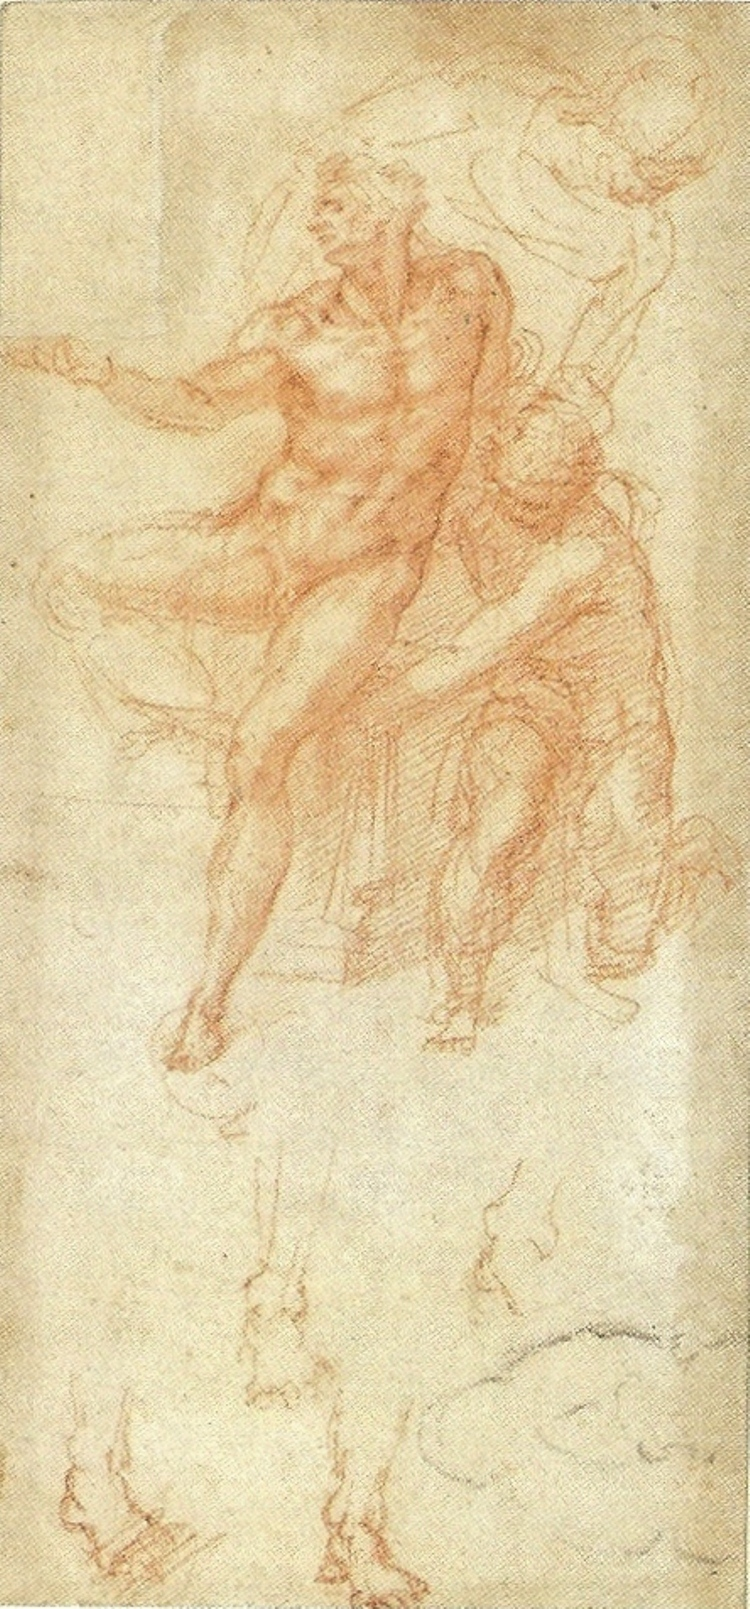 750x1609 Lazarus By Michelangelo, Drawing In Red And Black Chalk